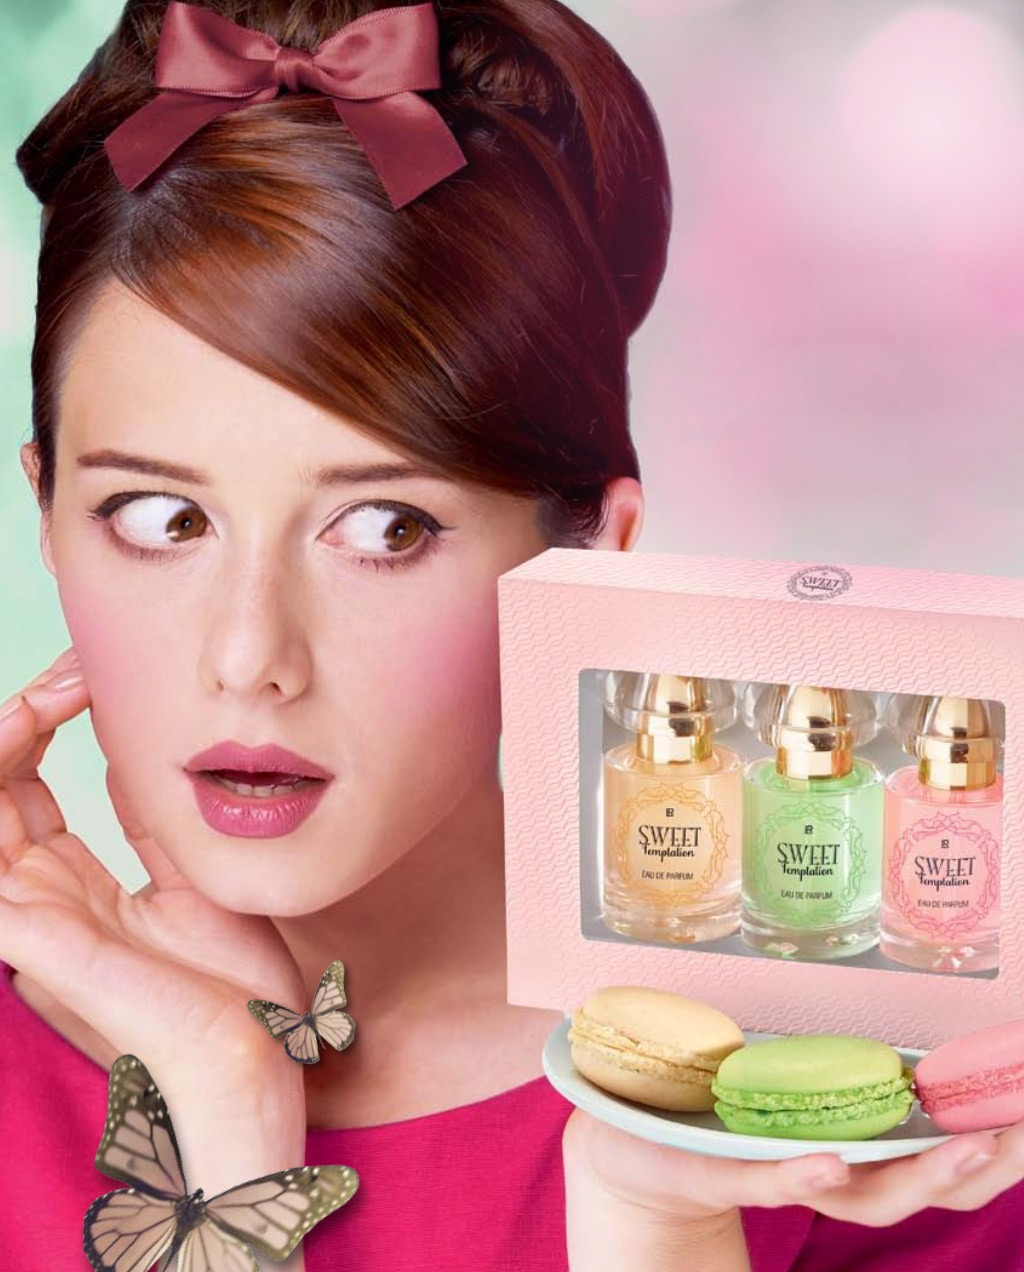 Sweet Temptation Pink LR perfume - a new fragrance for ...